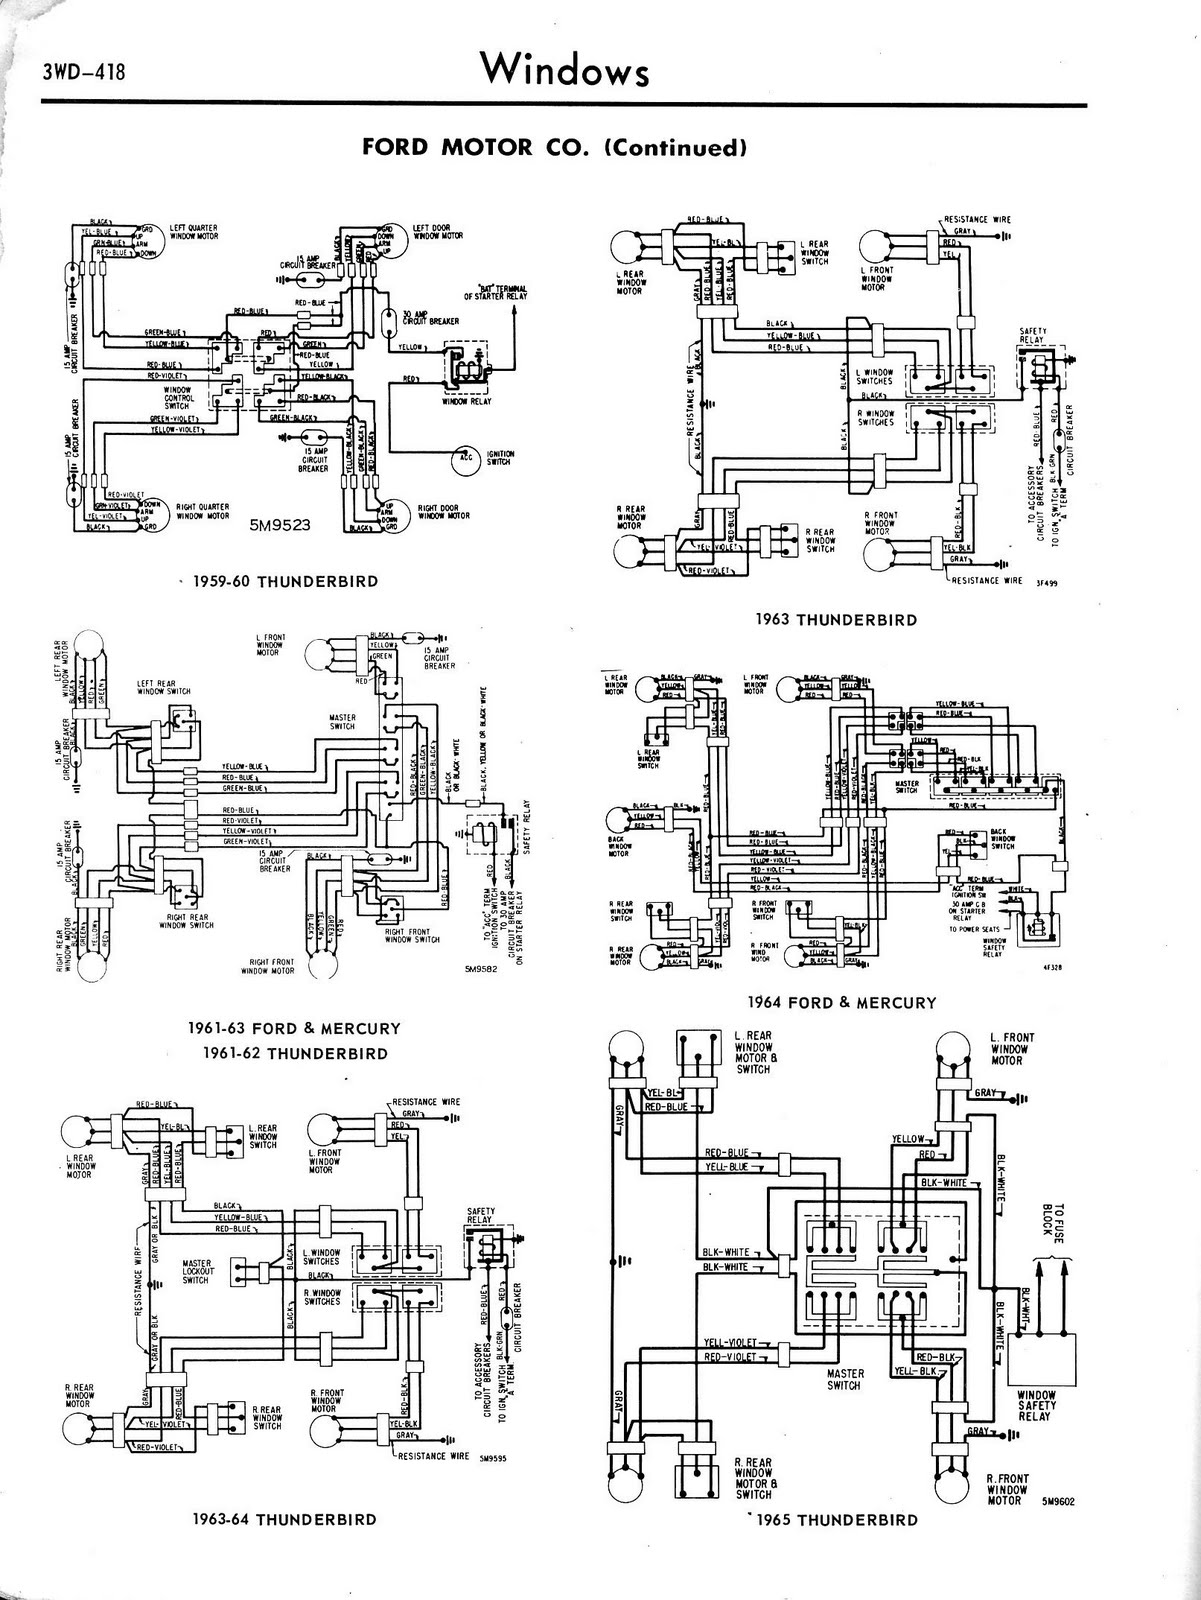 1965+Ford+Thunderbird+Window+Controls+Diagram 1965 thunderbird wiring diagram 1965 ford thunderbird wiring 1965 ford thunderbird wiring diagram at crackthecode.co